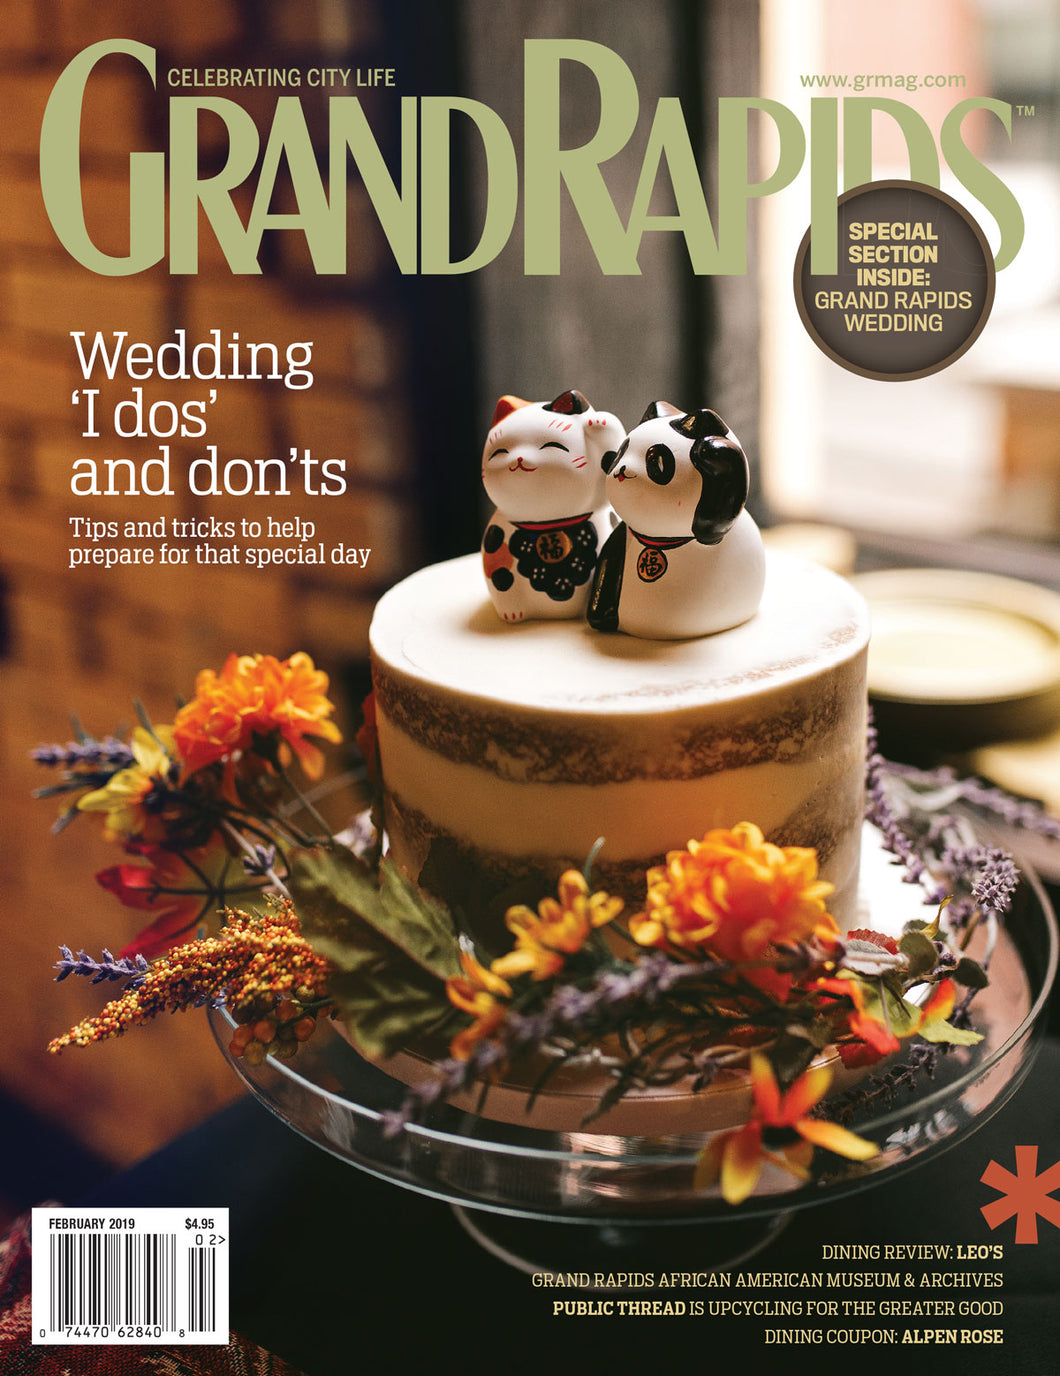 Grand Rapids Magazine, February 2019 issue